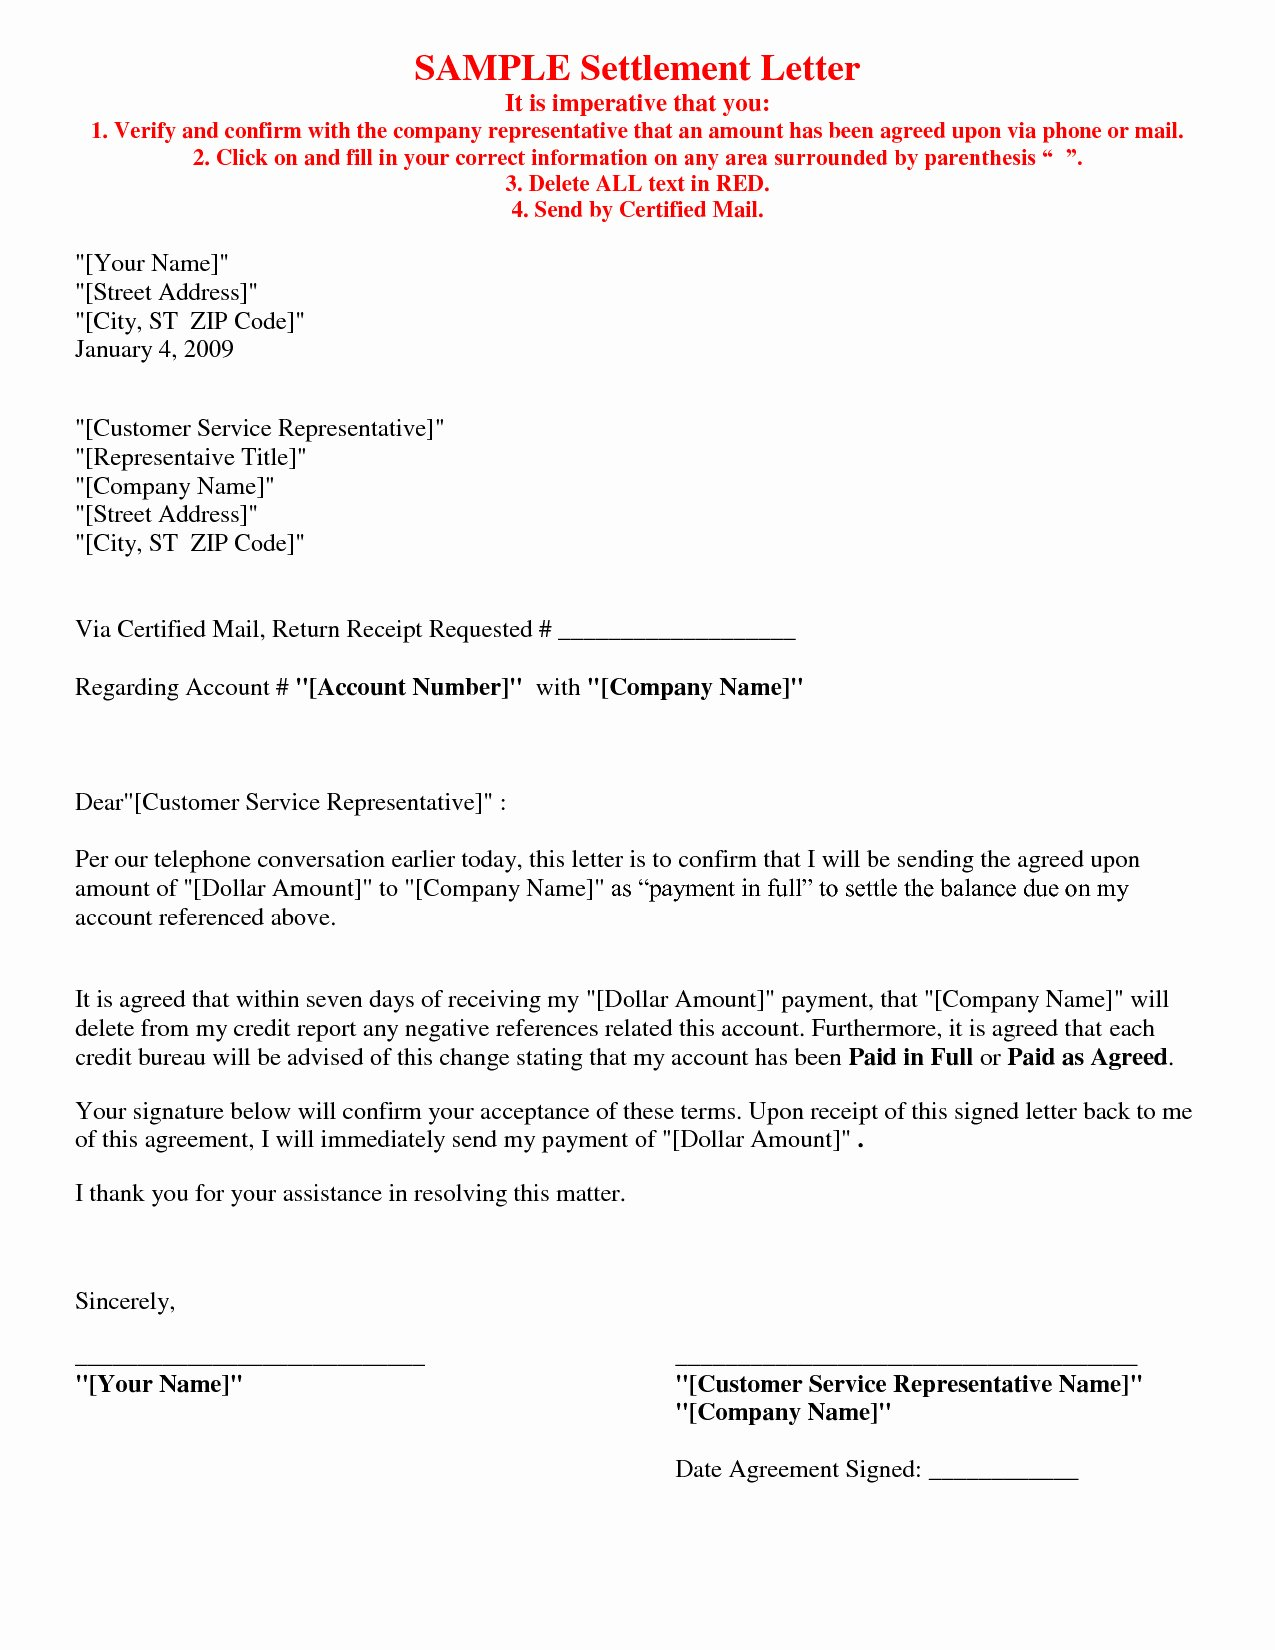 Car Accident Agreement Letter Between Two Parties Awesome Full and Final Settlement Letter Template Car Accident